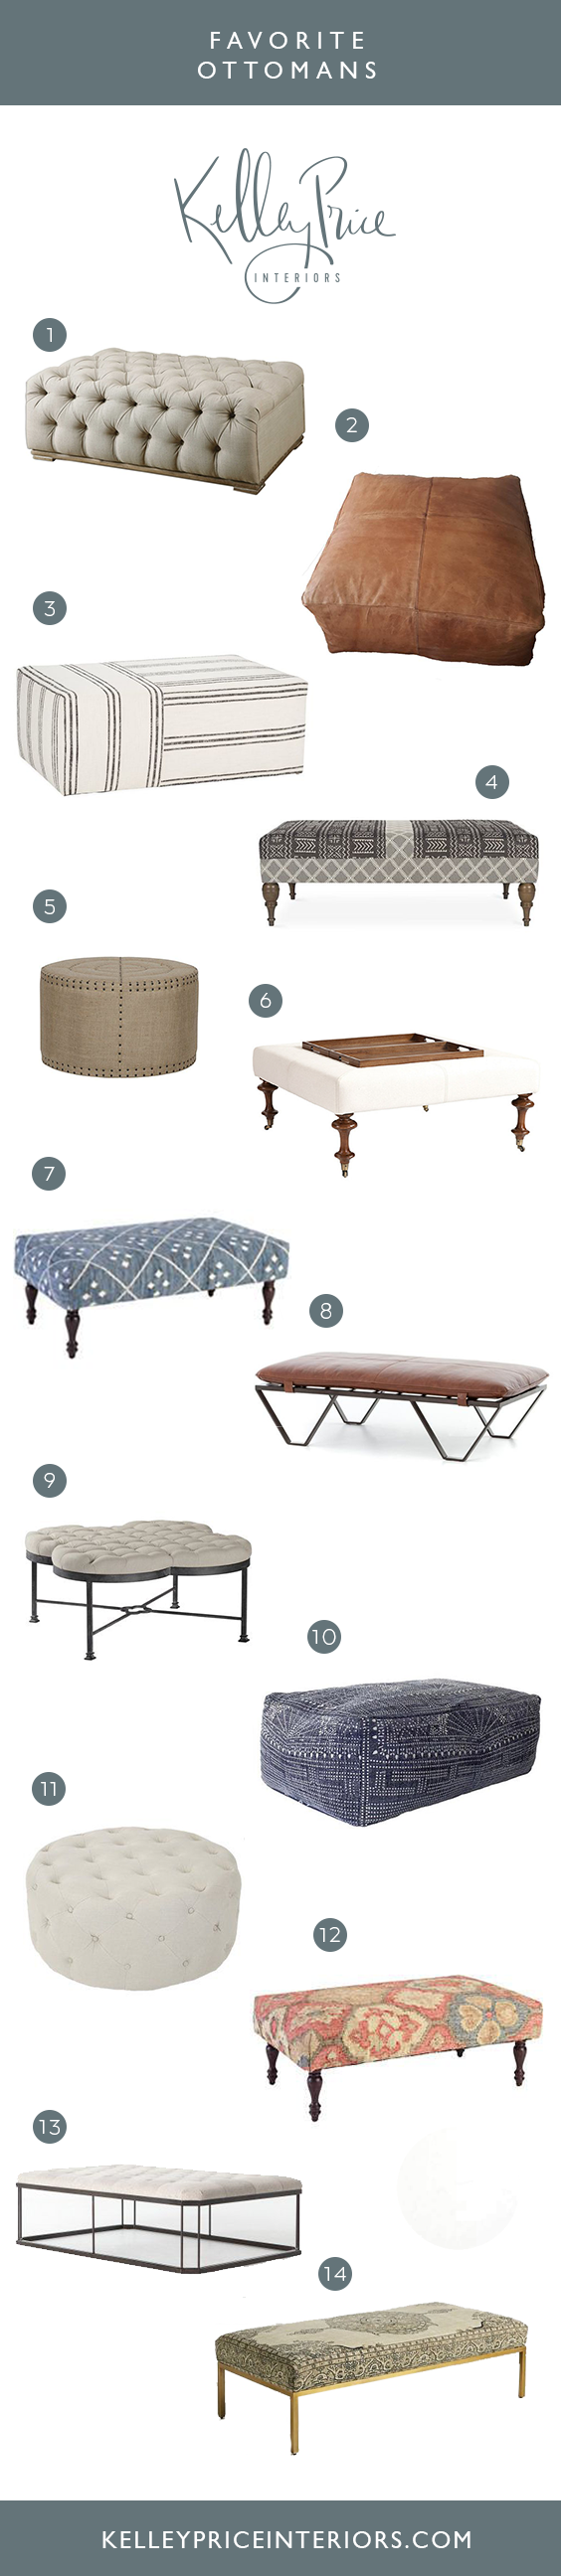 Favorite Ottomans | Kelley Price Interiors.png